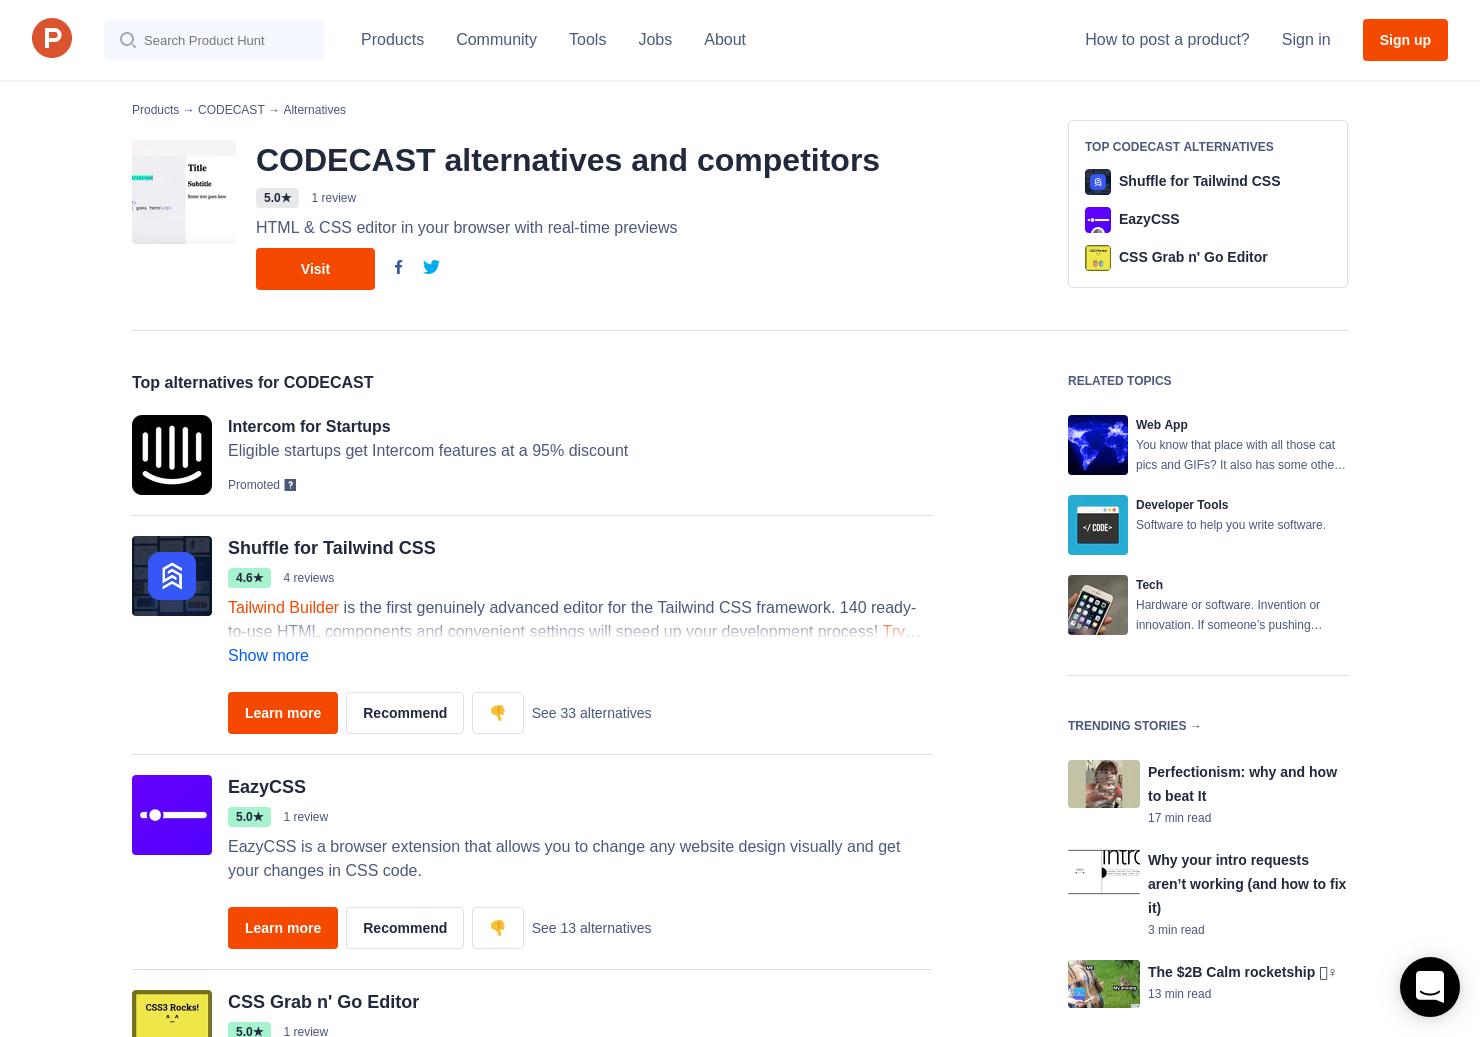 5 Alternatives to CODECAST | Product Hunt